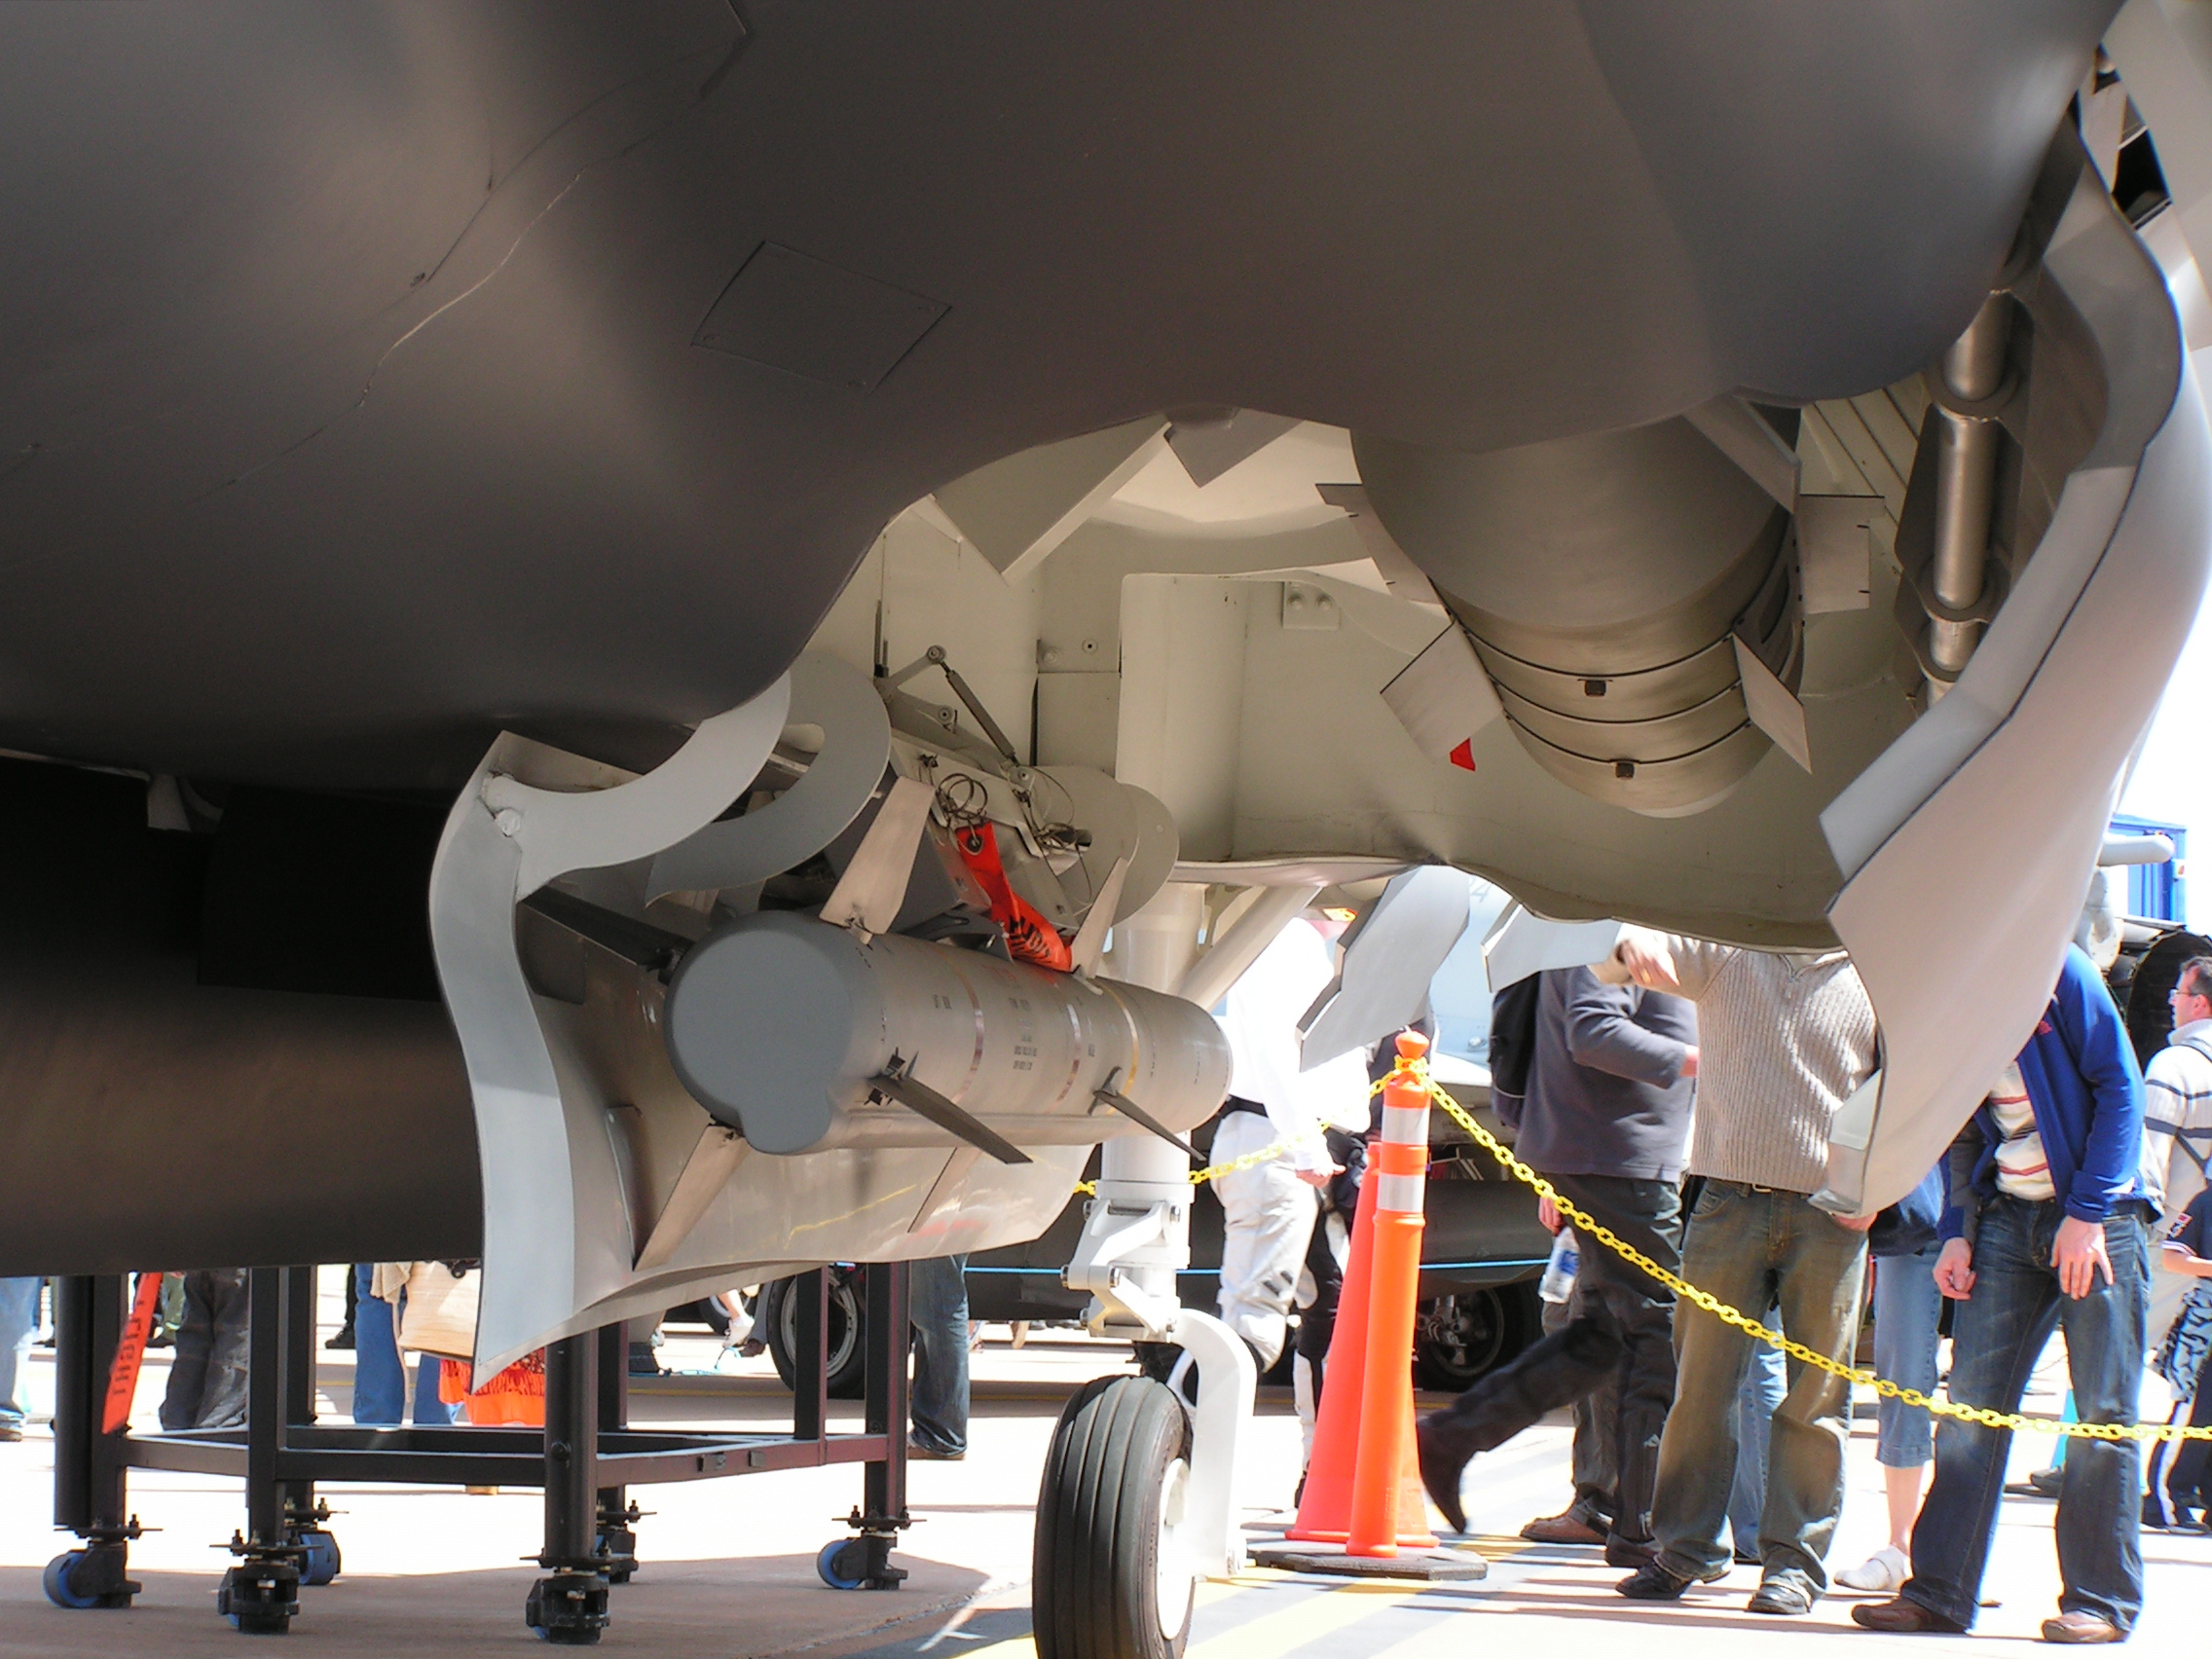 Close-up view of open aircraft weapons bay. The aircraft mock-up itself is on display, watched on by onlookers.